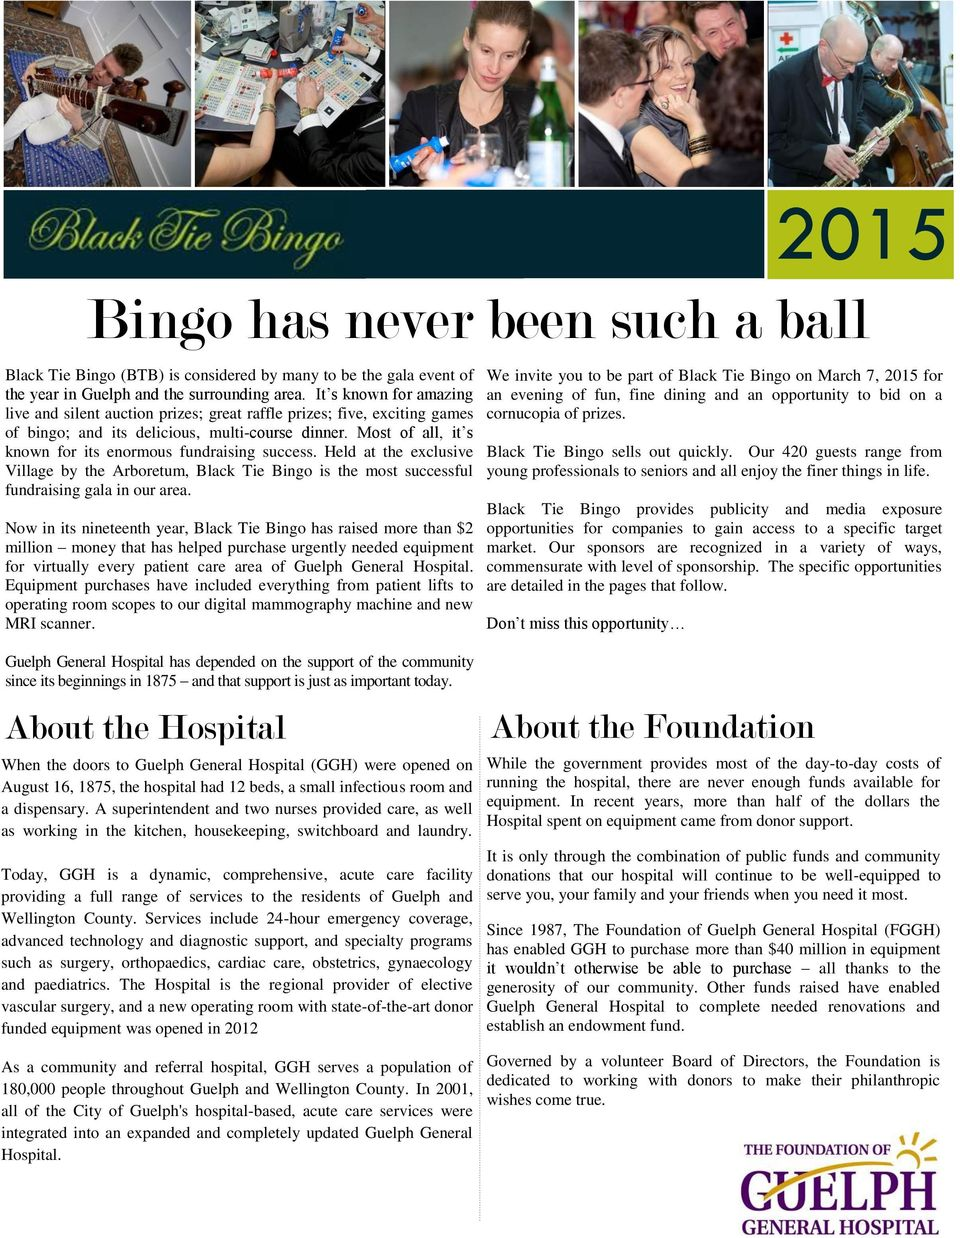 Most of all, it s known for its enormous fundraising success. Held at the exclusive Village by the Arboretum, Black Tie Bingo is the most successful fundraising gala in our area.